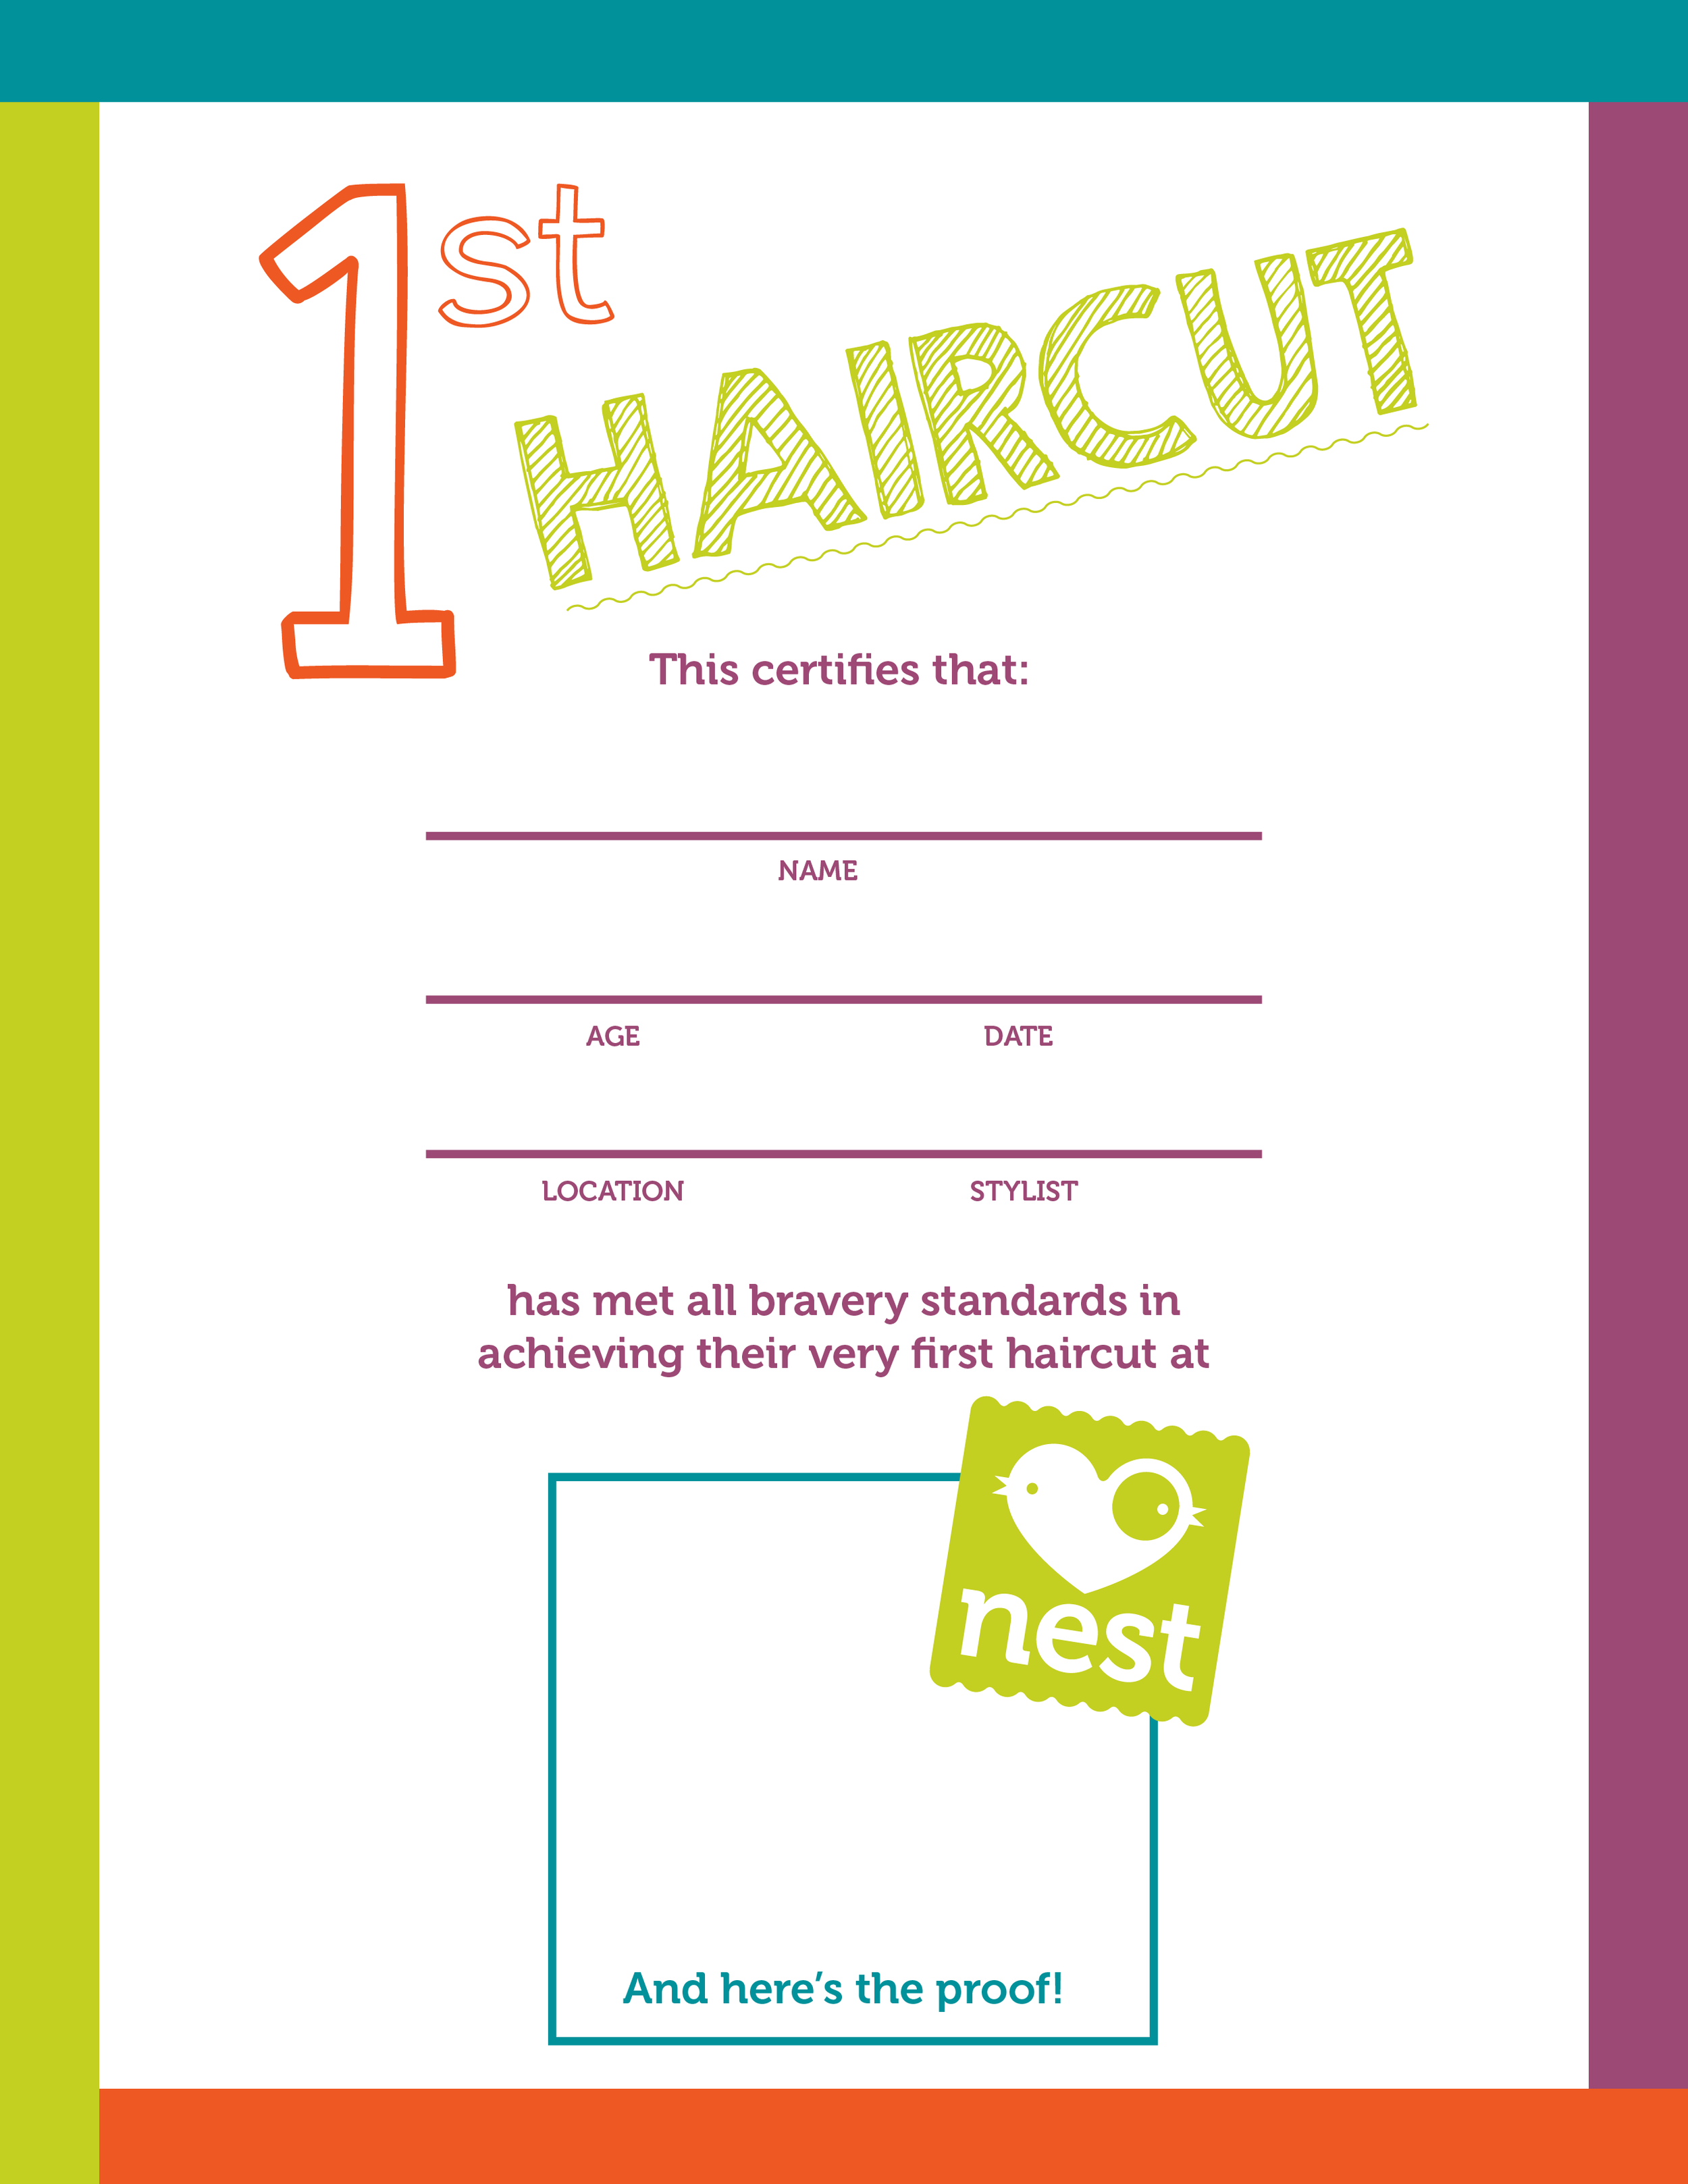 1stHaircutCertificate copy-01.png